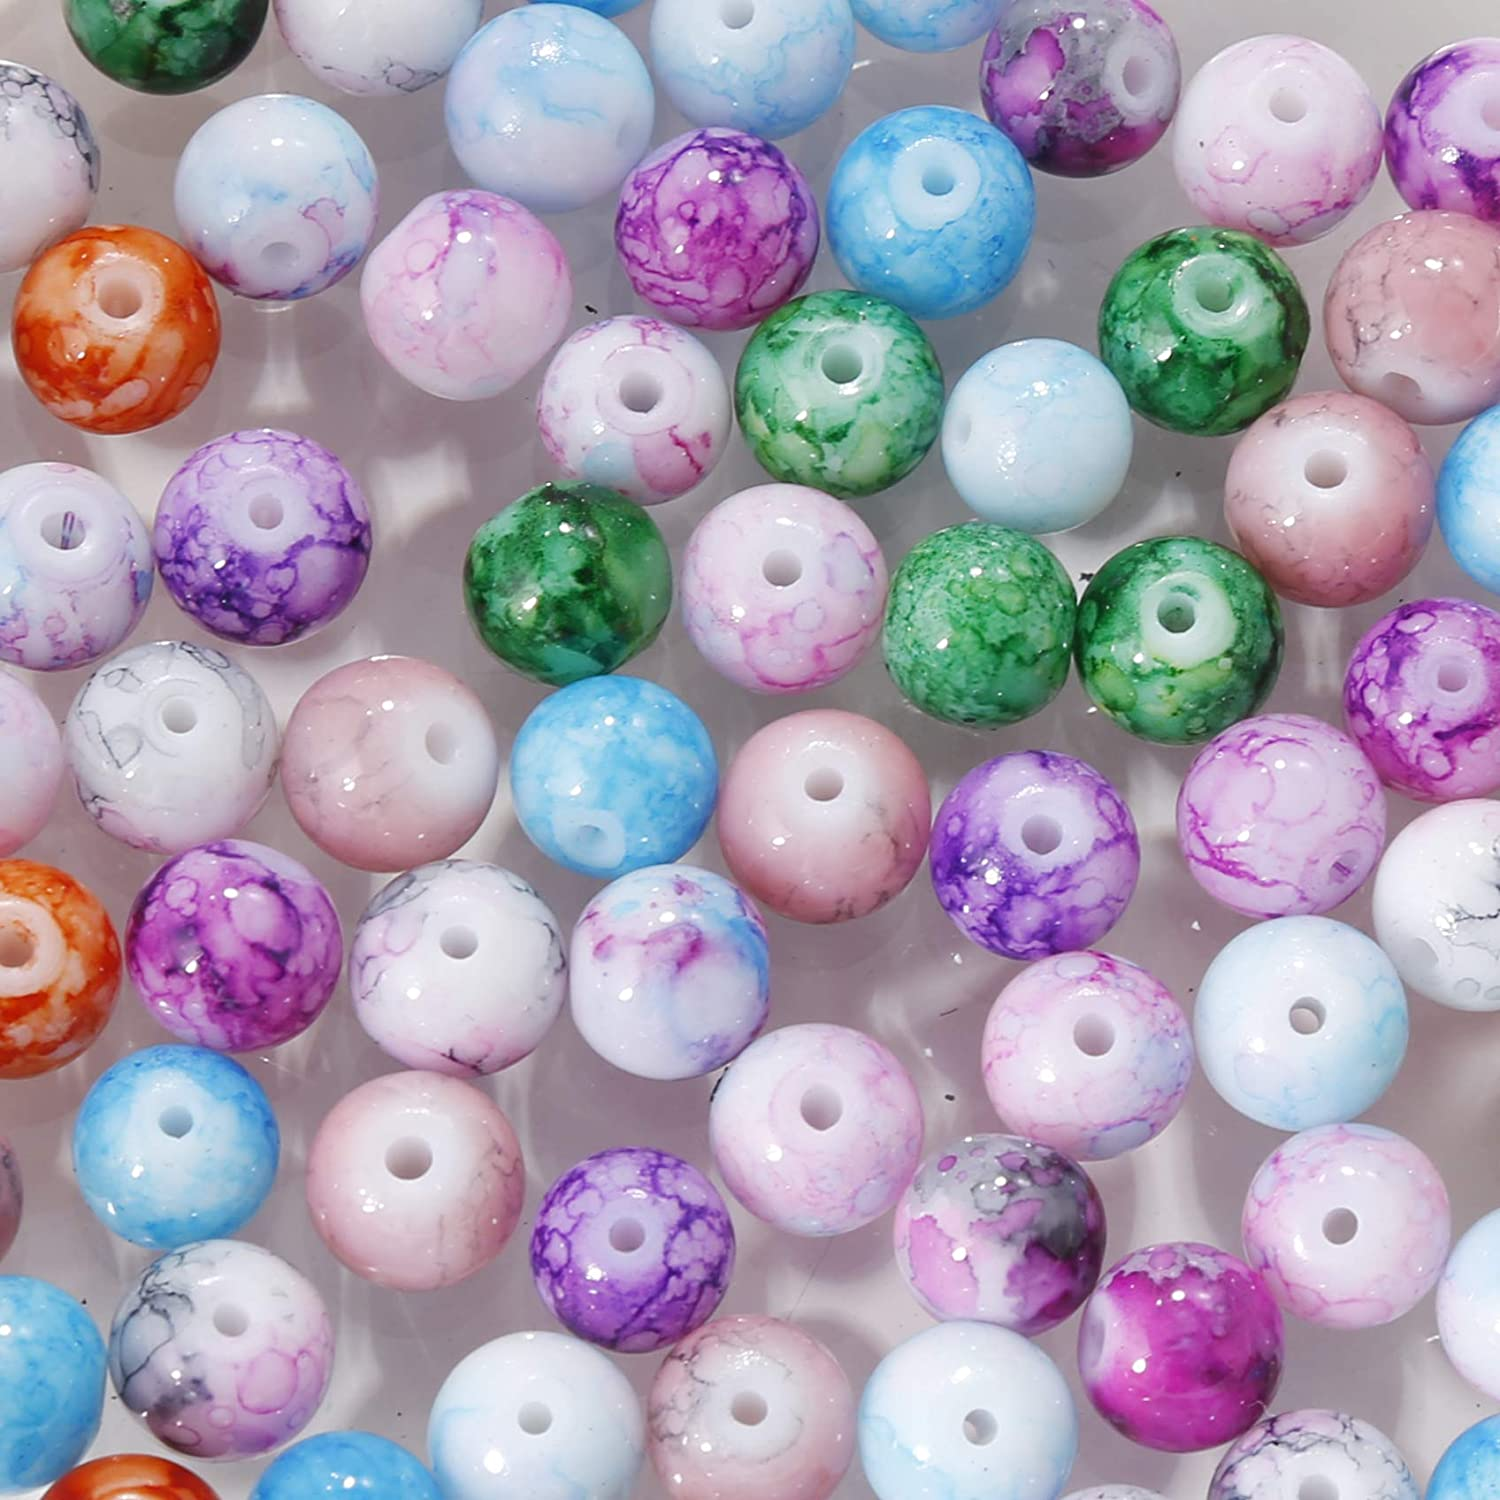 100 BULK Beads Acrylic Heart Beads Assorted Lot 8mm Beads Wholesale